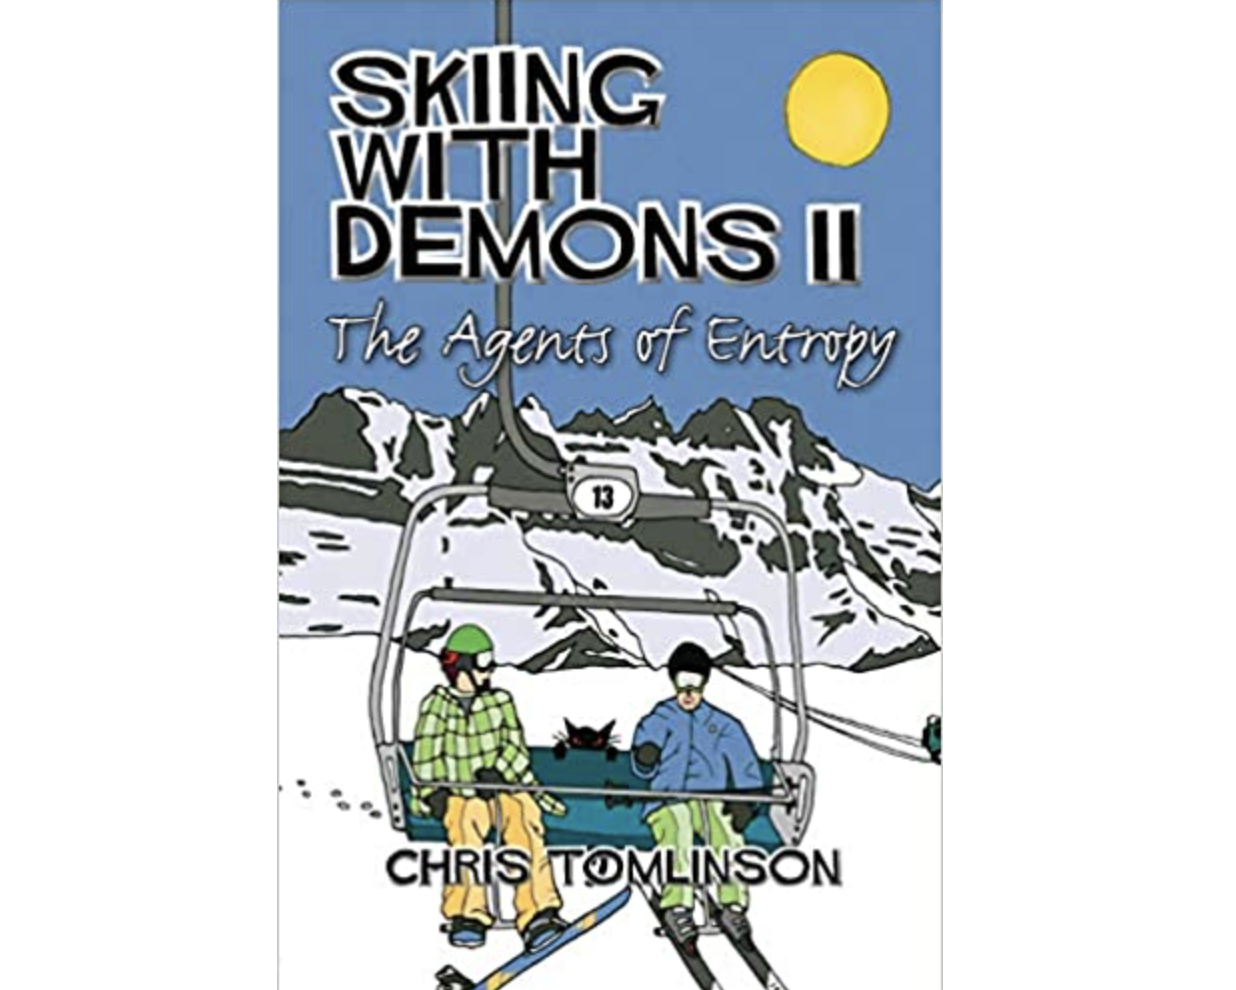 Tomlinson - Skiing With Demons 2